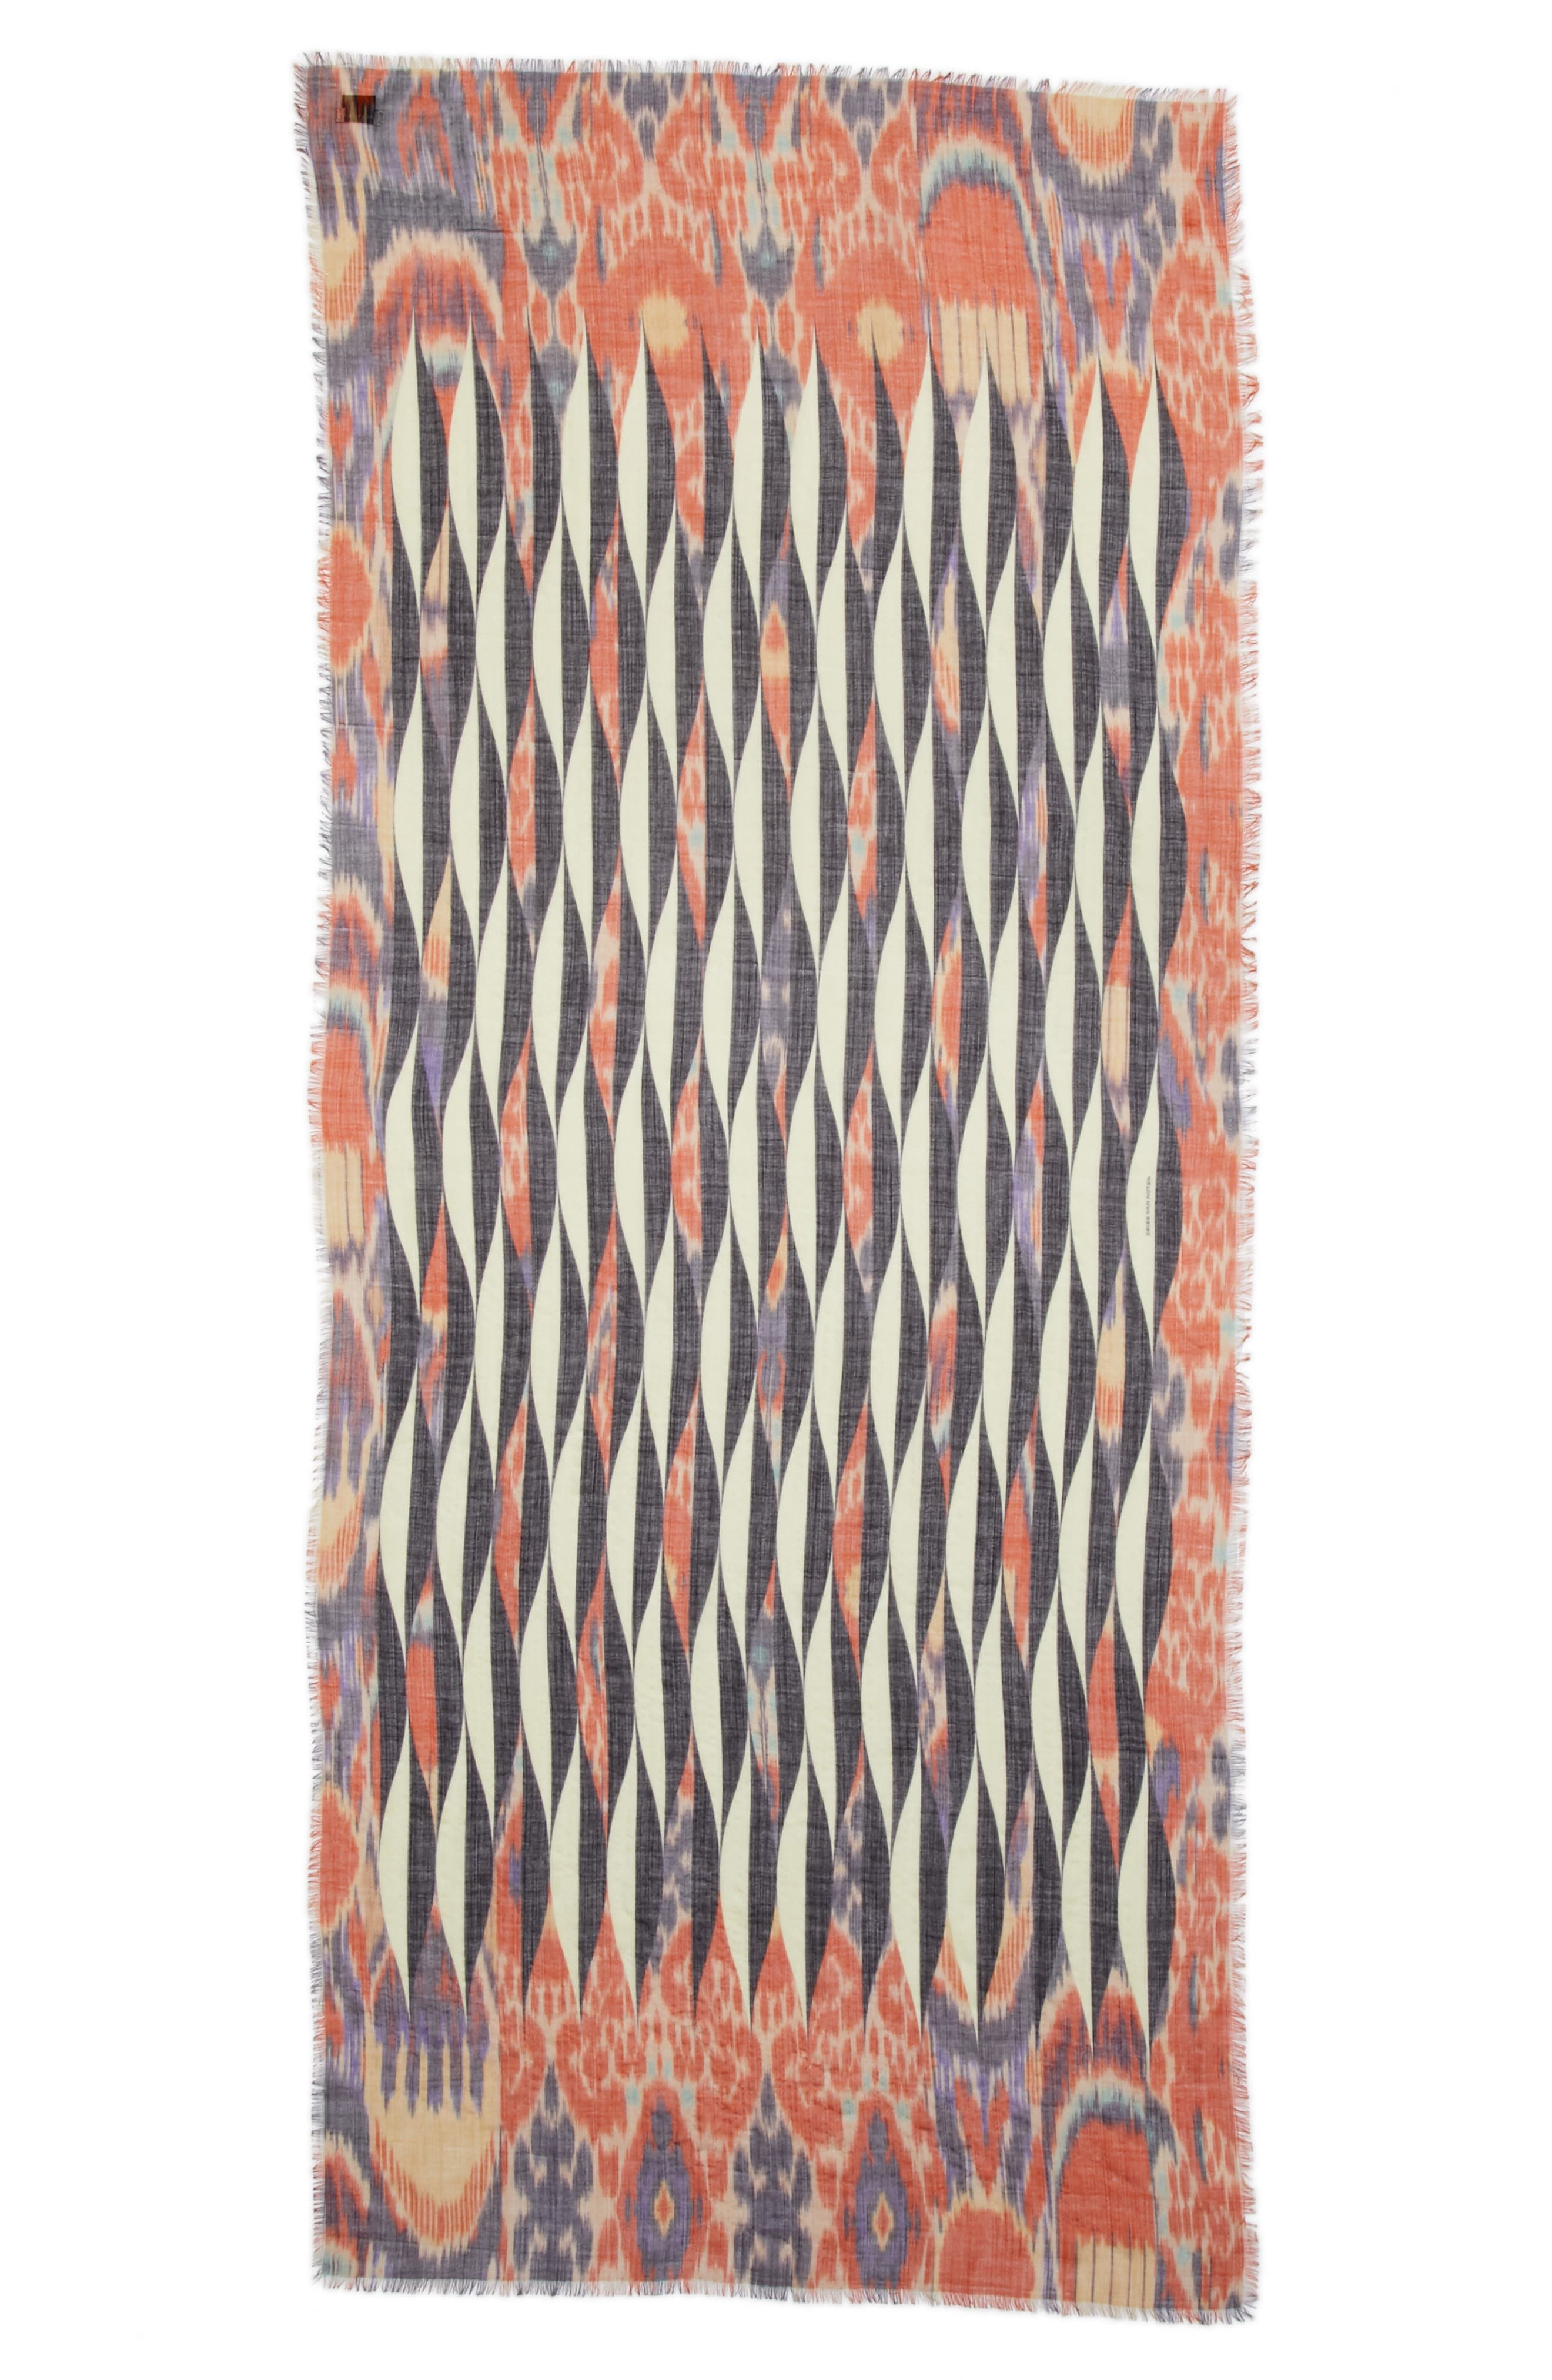 Alternate Image 1 Selected - Dries Van Noten Ikat Print Cashmere Scarf